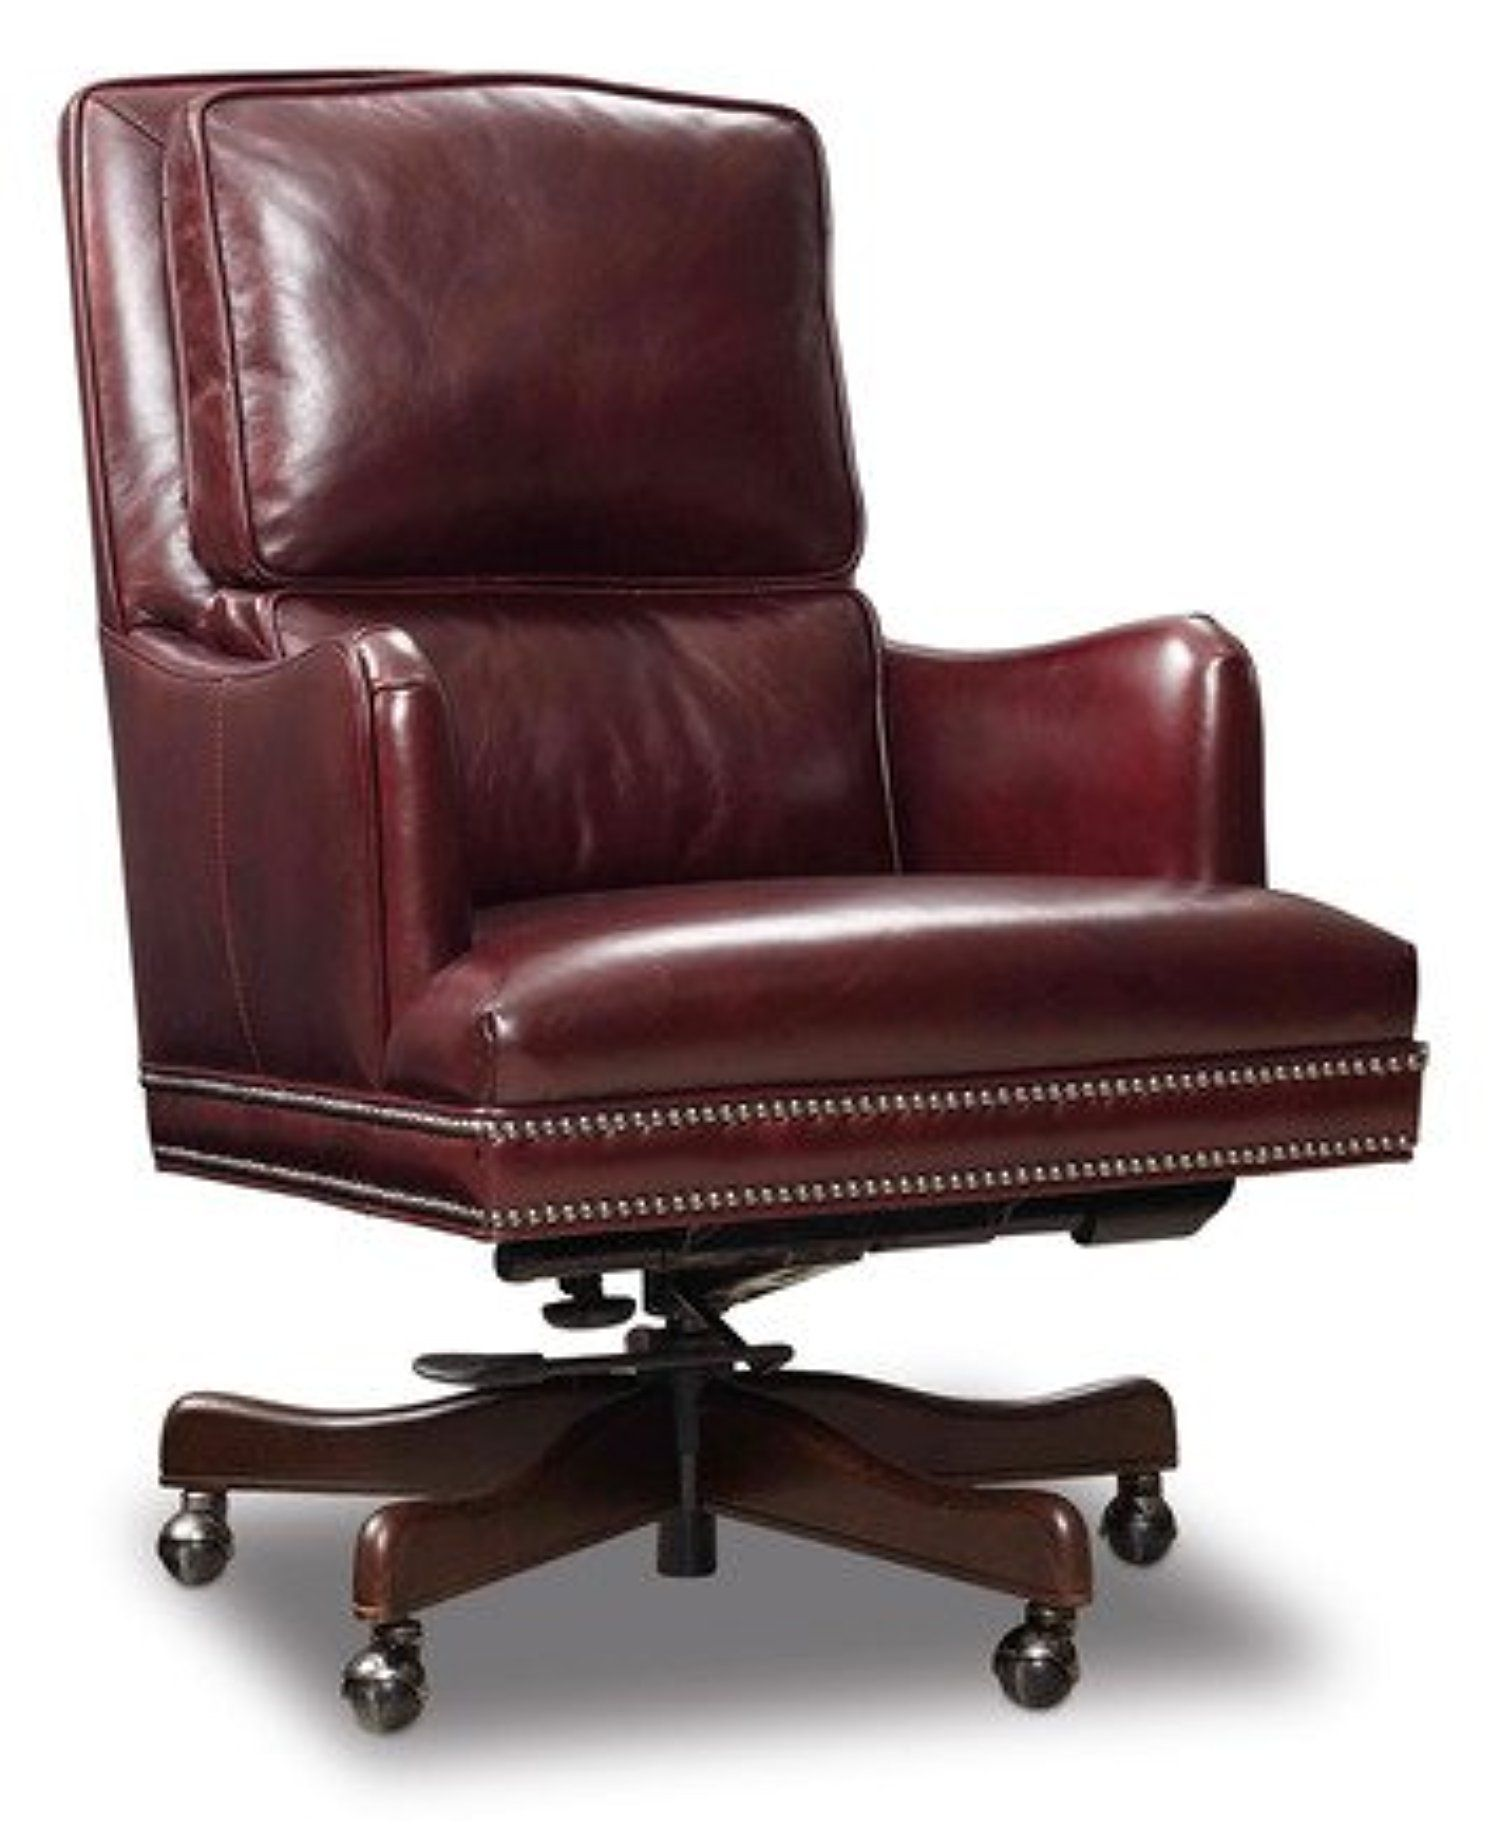 Burgundy Leather Executive Office Chair Ec464 069 Awesome Products Selected By Anna Churchill